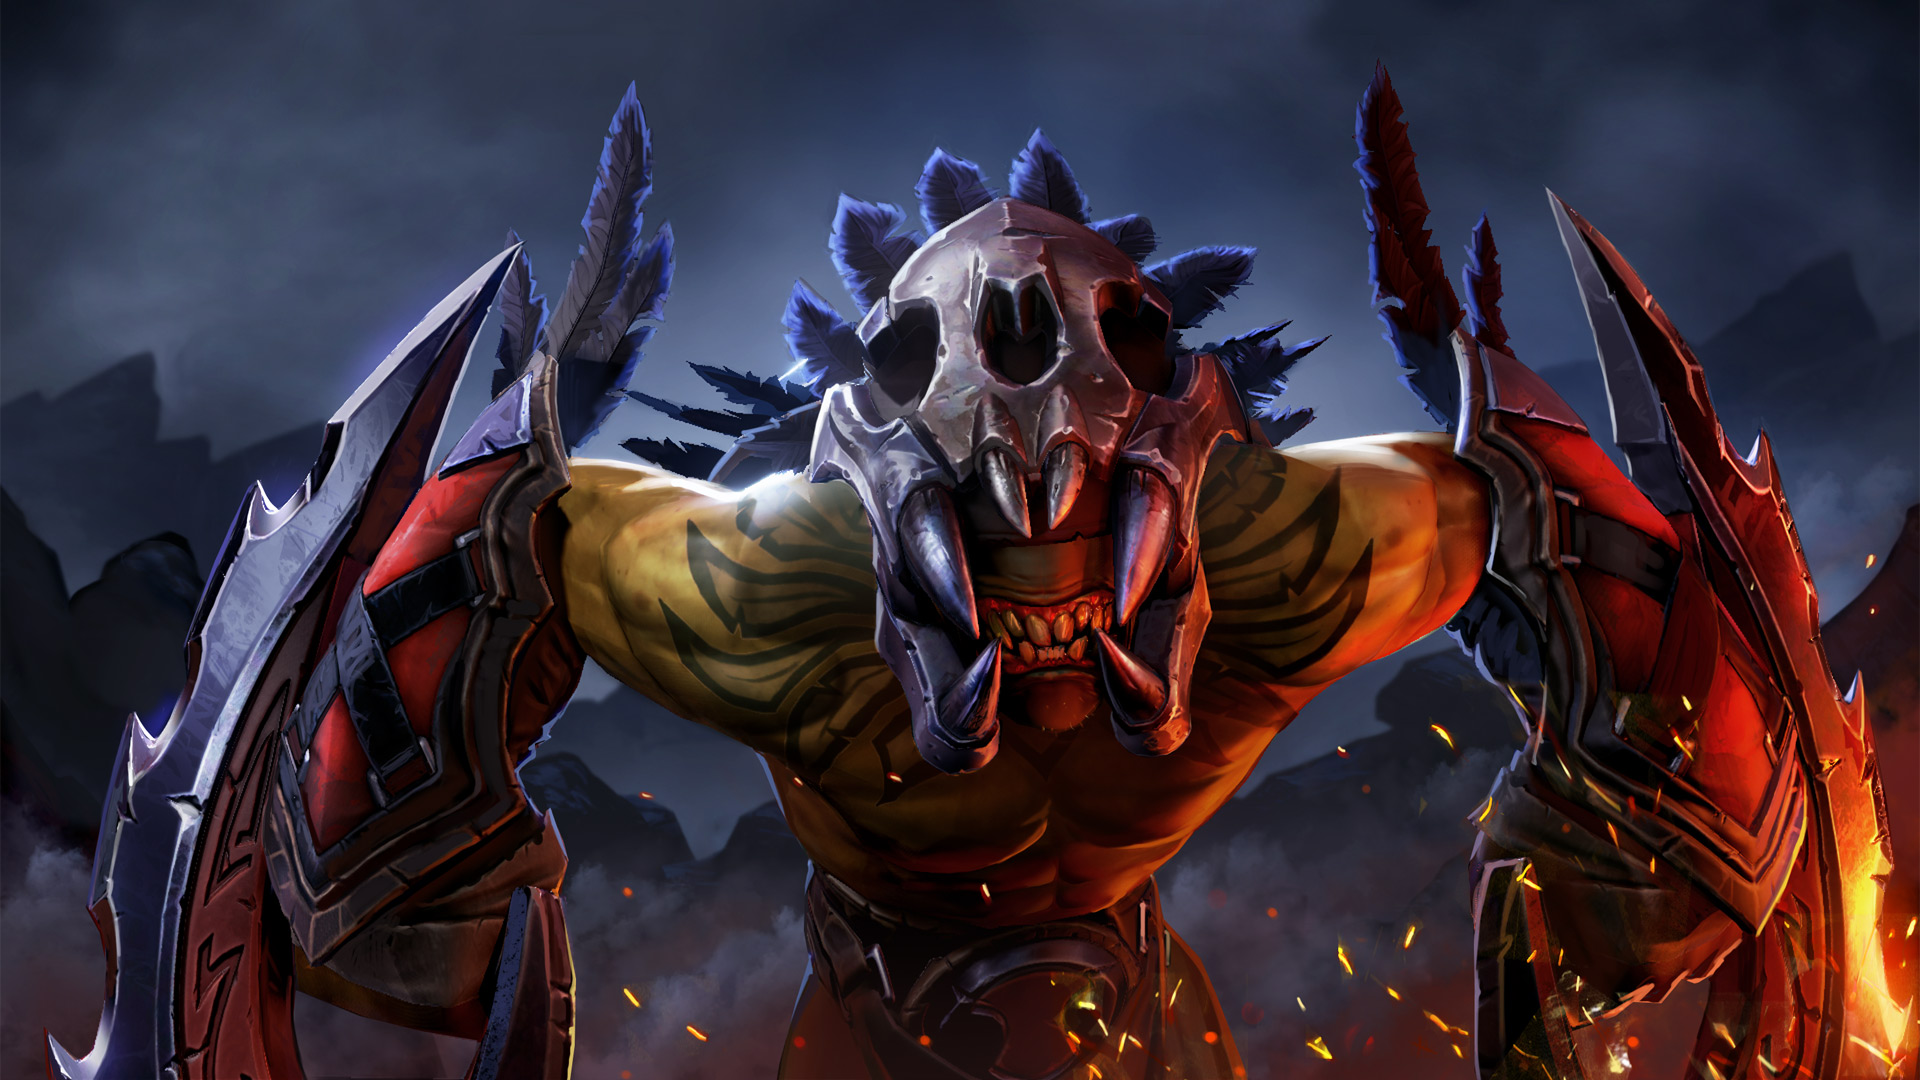 Dota 2 - Bloodseeker Wallpaper by Lothrean on DeviantArt